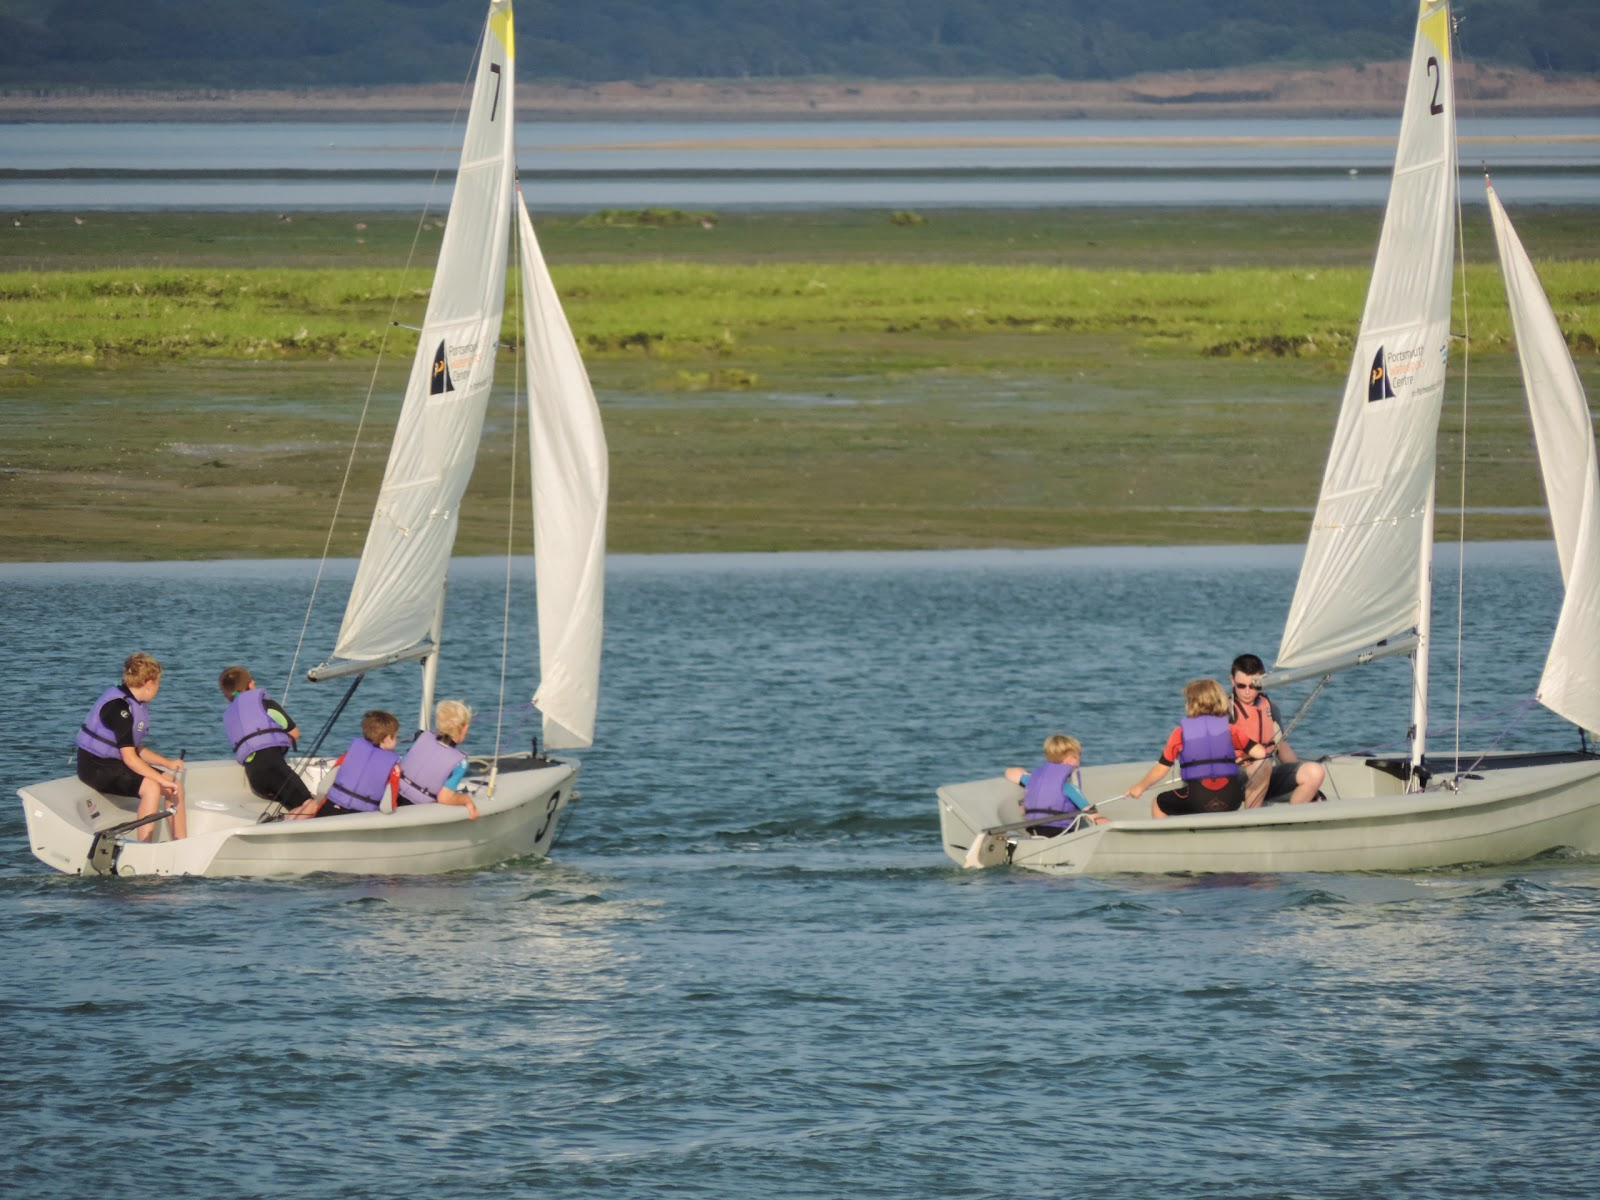 portsmouth watersports centre sailing lessons in langstone harbour